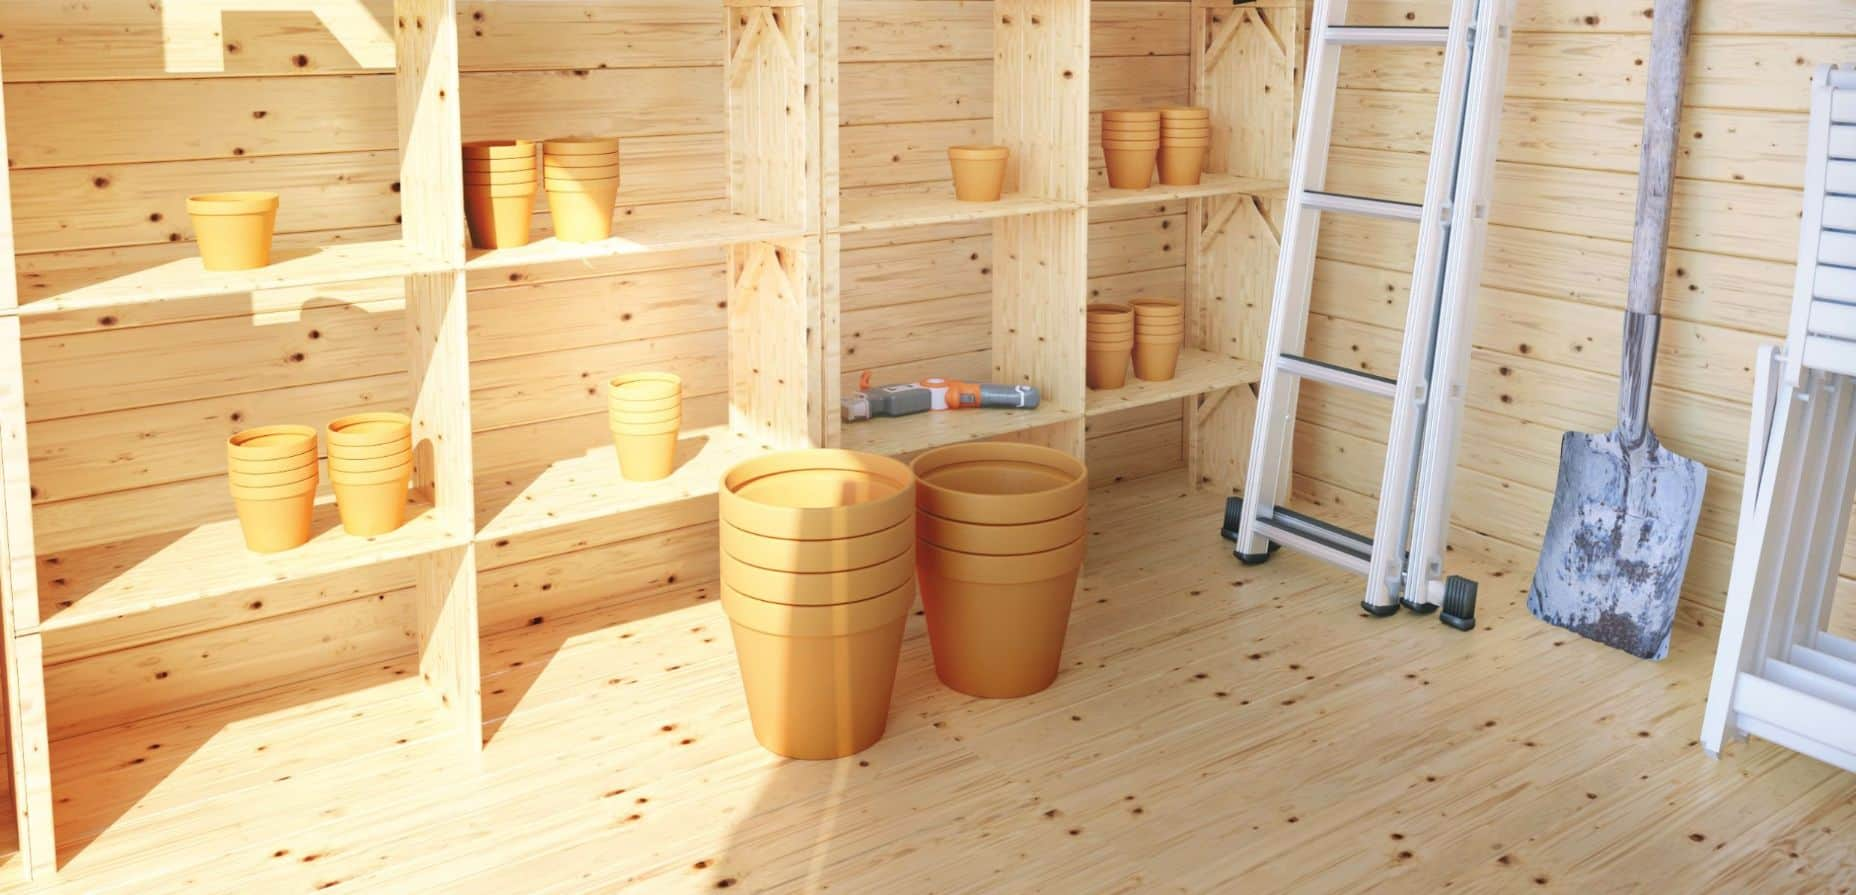 shed-into-hobby-room-7-shelves-and-storage-